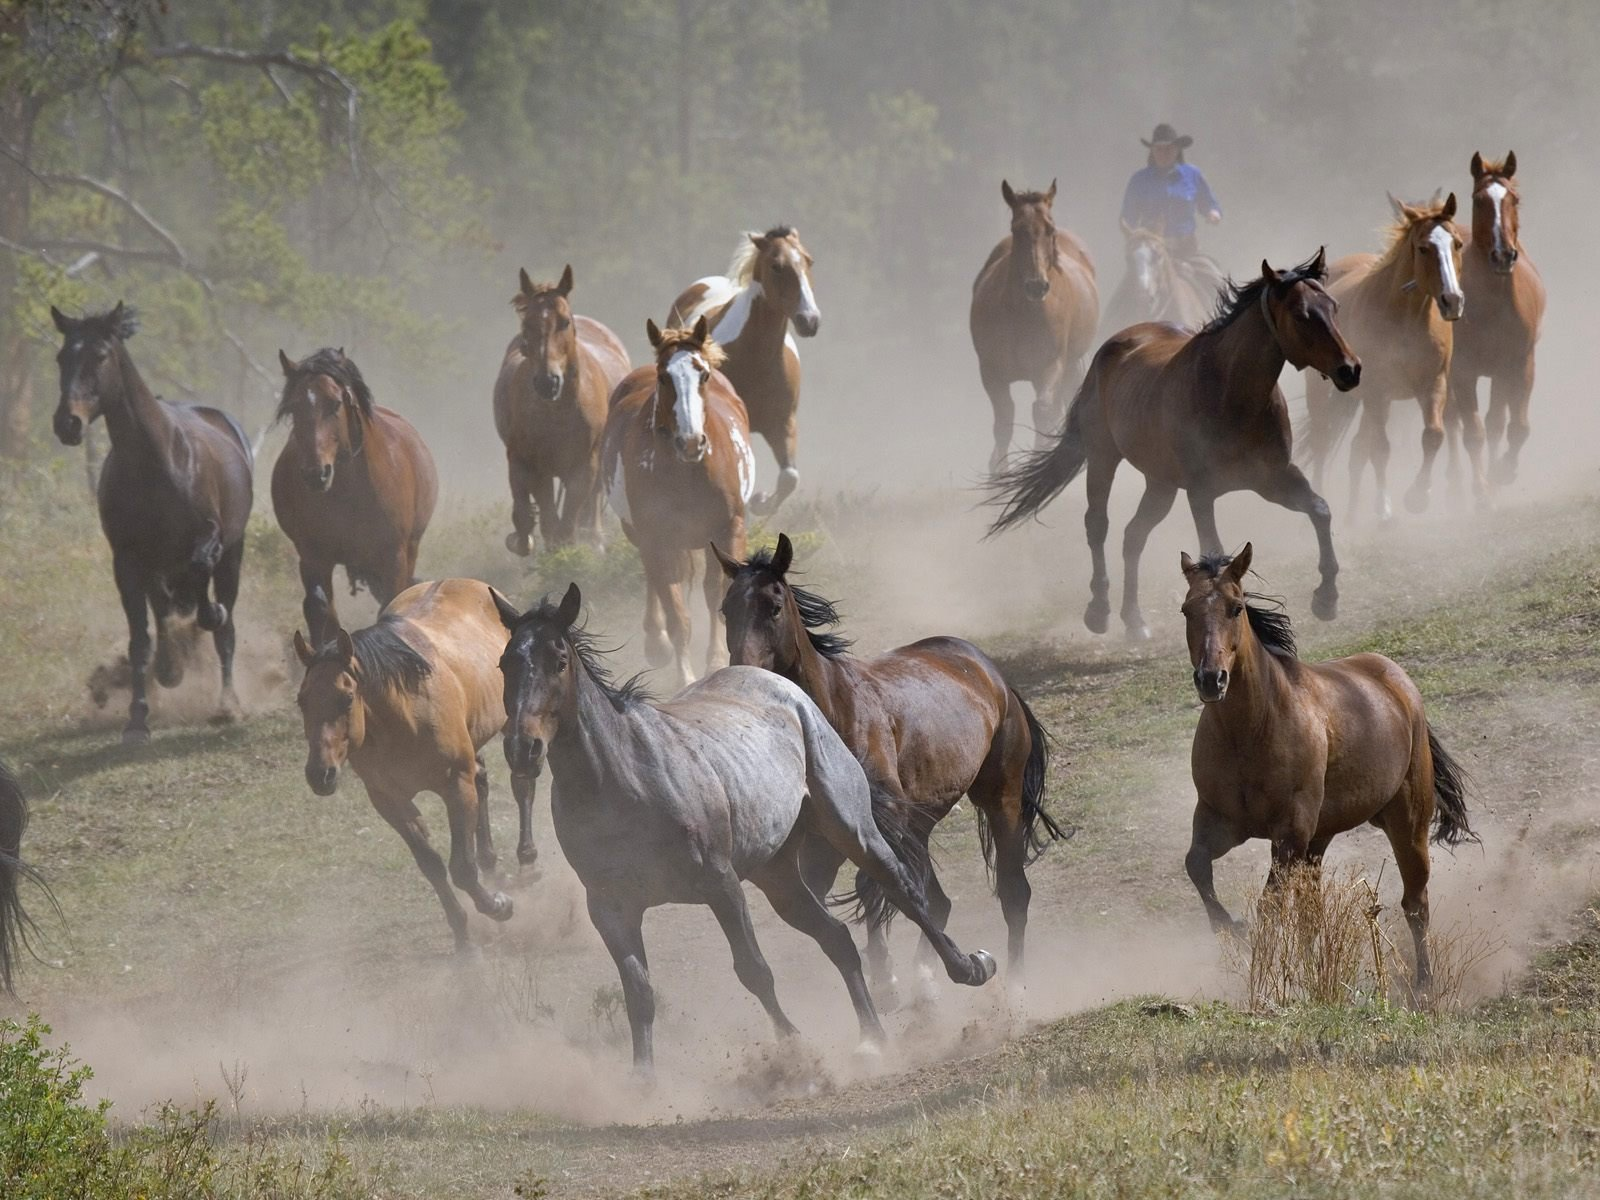 The Cat Running Horses Wallpapers for Desktop Backgrounds 1600x1200